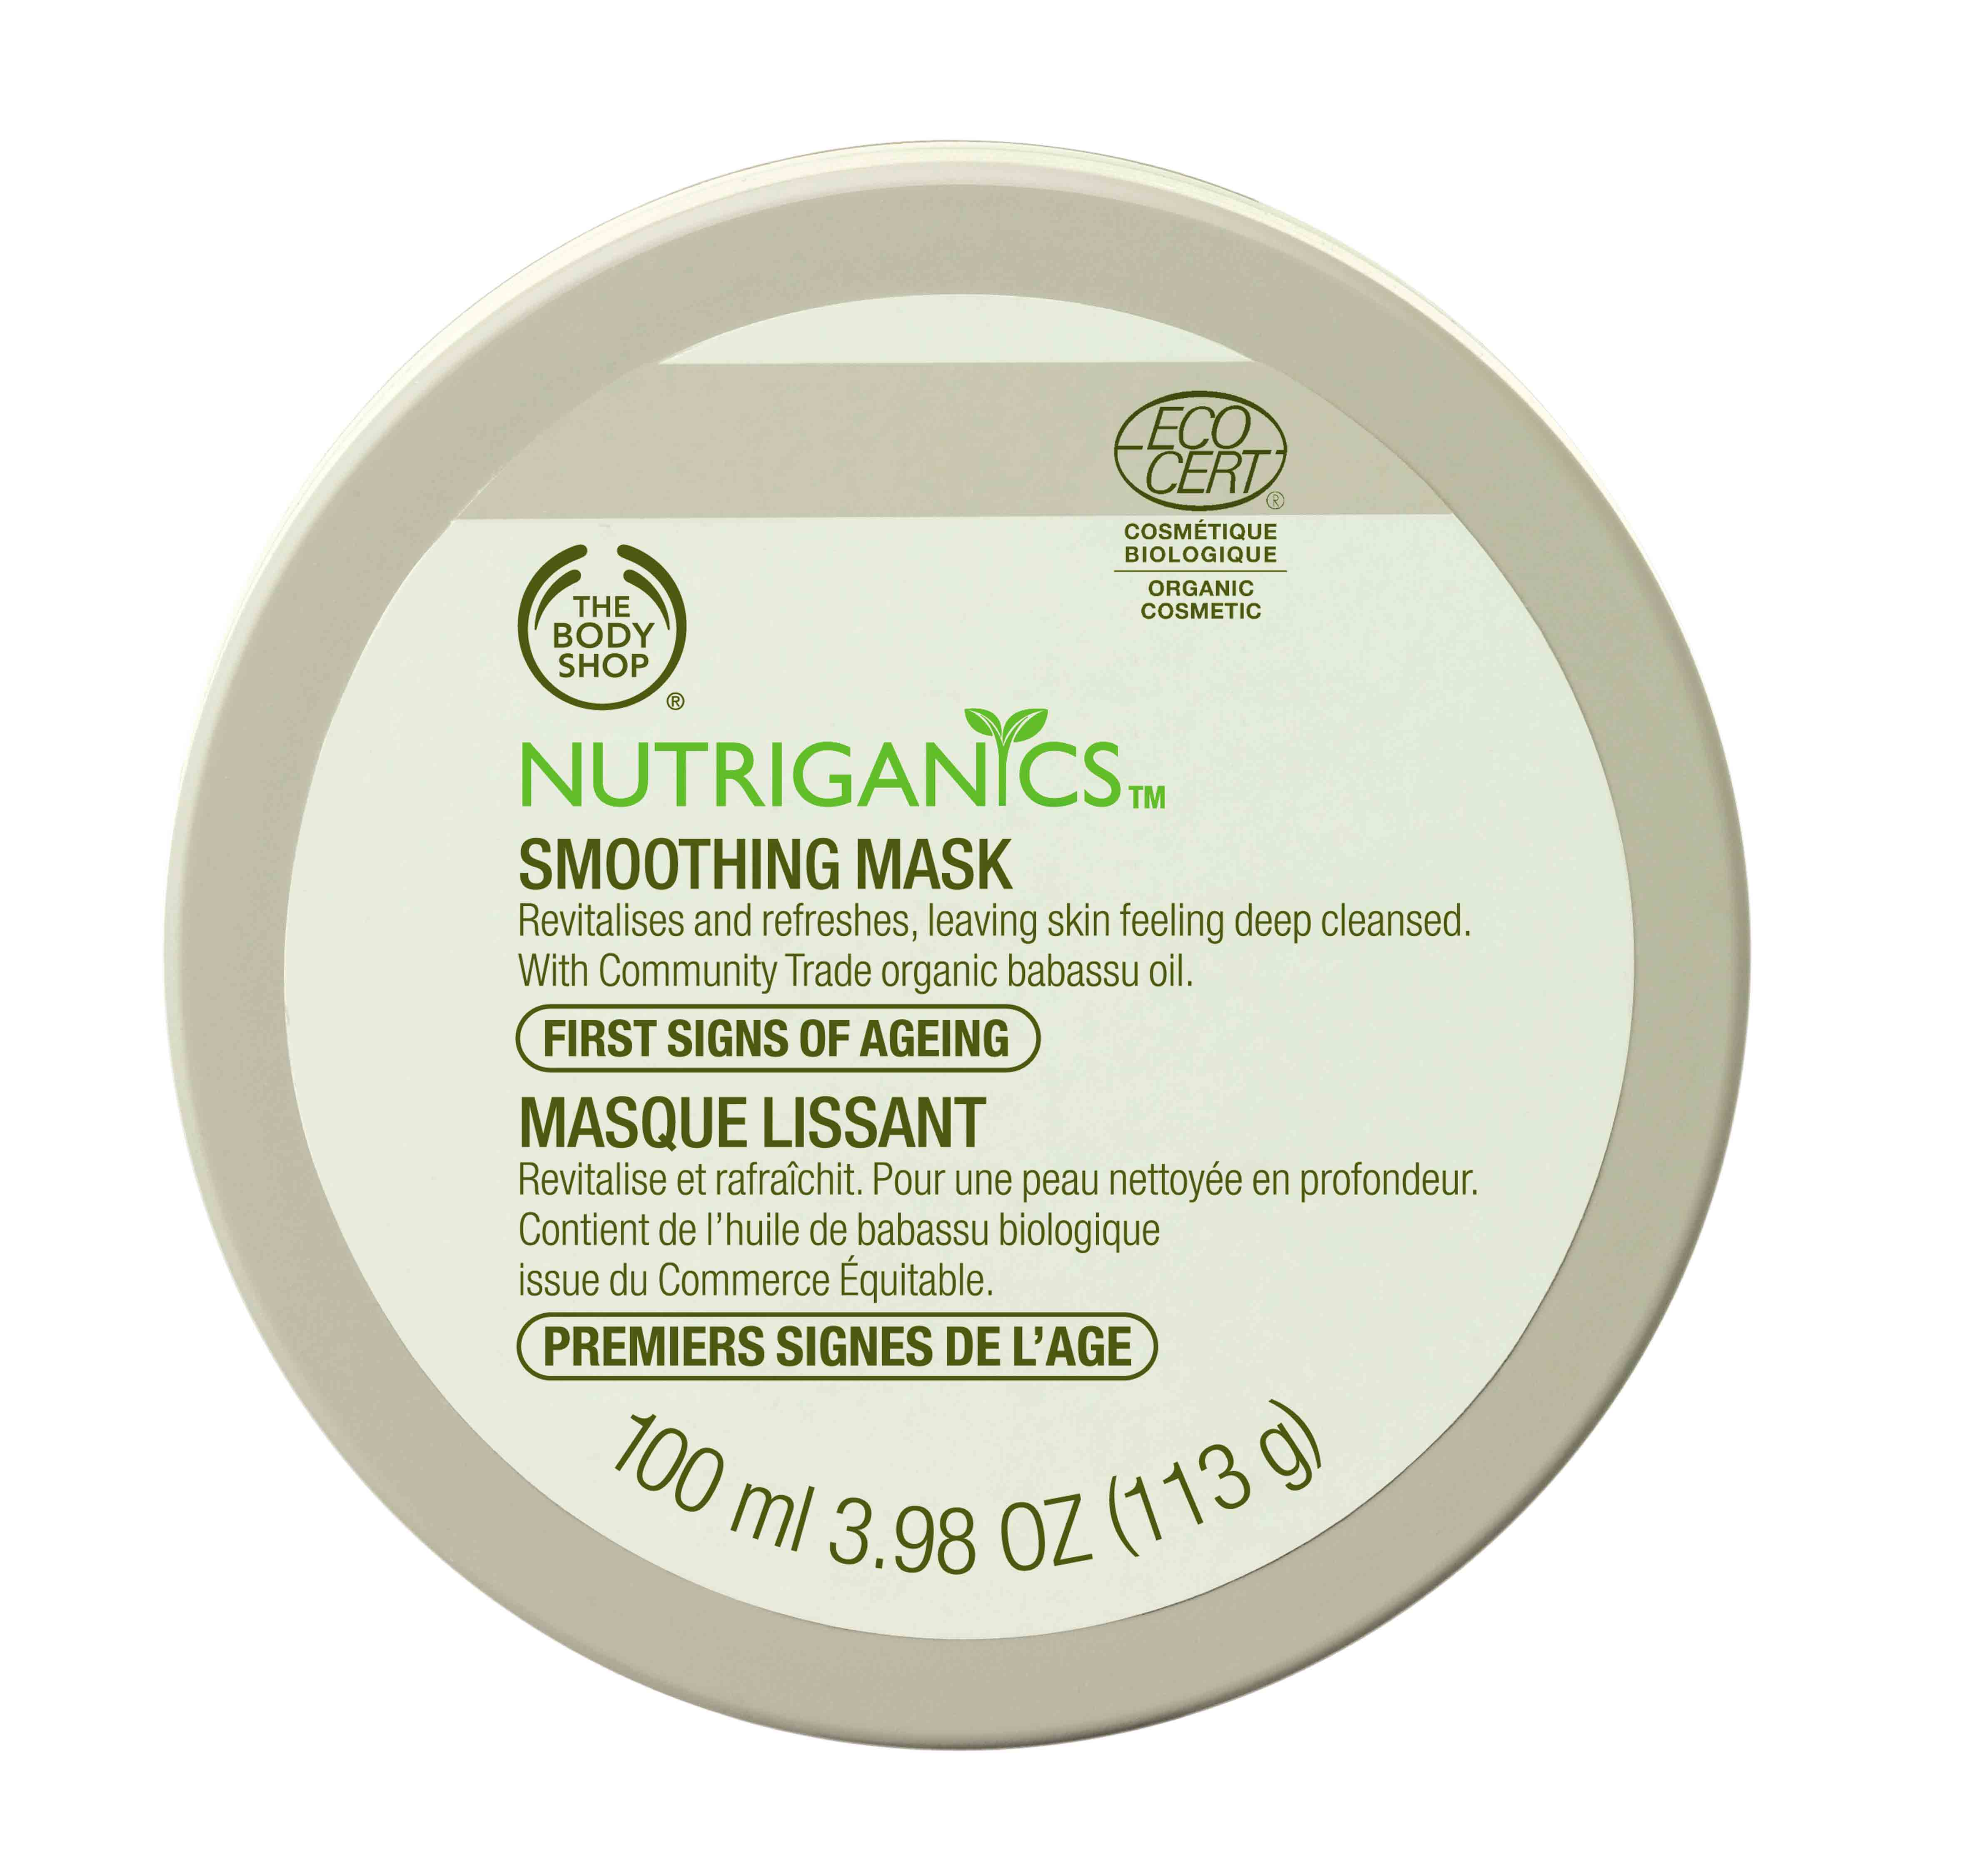 Nutrigtanics Smoothing Mask (Hero)